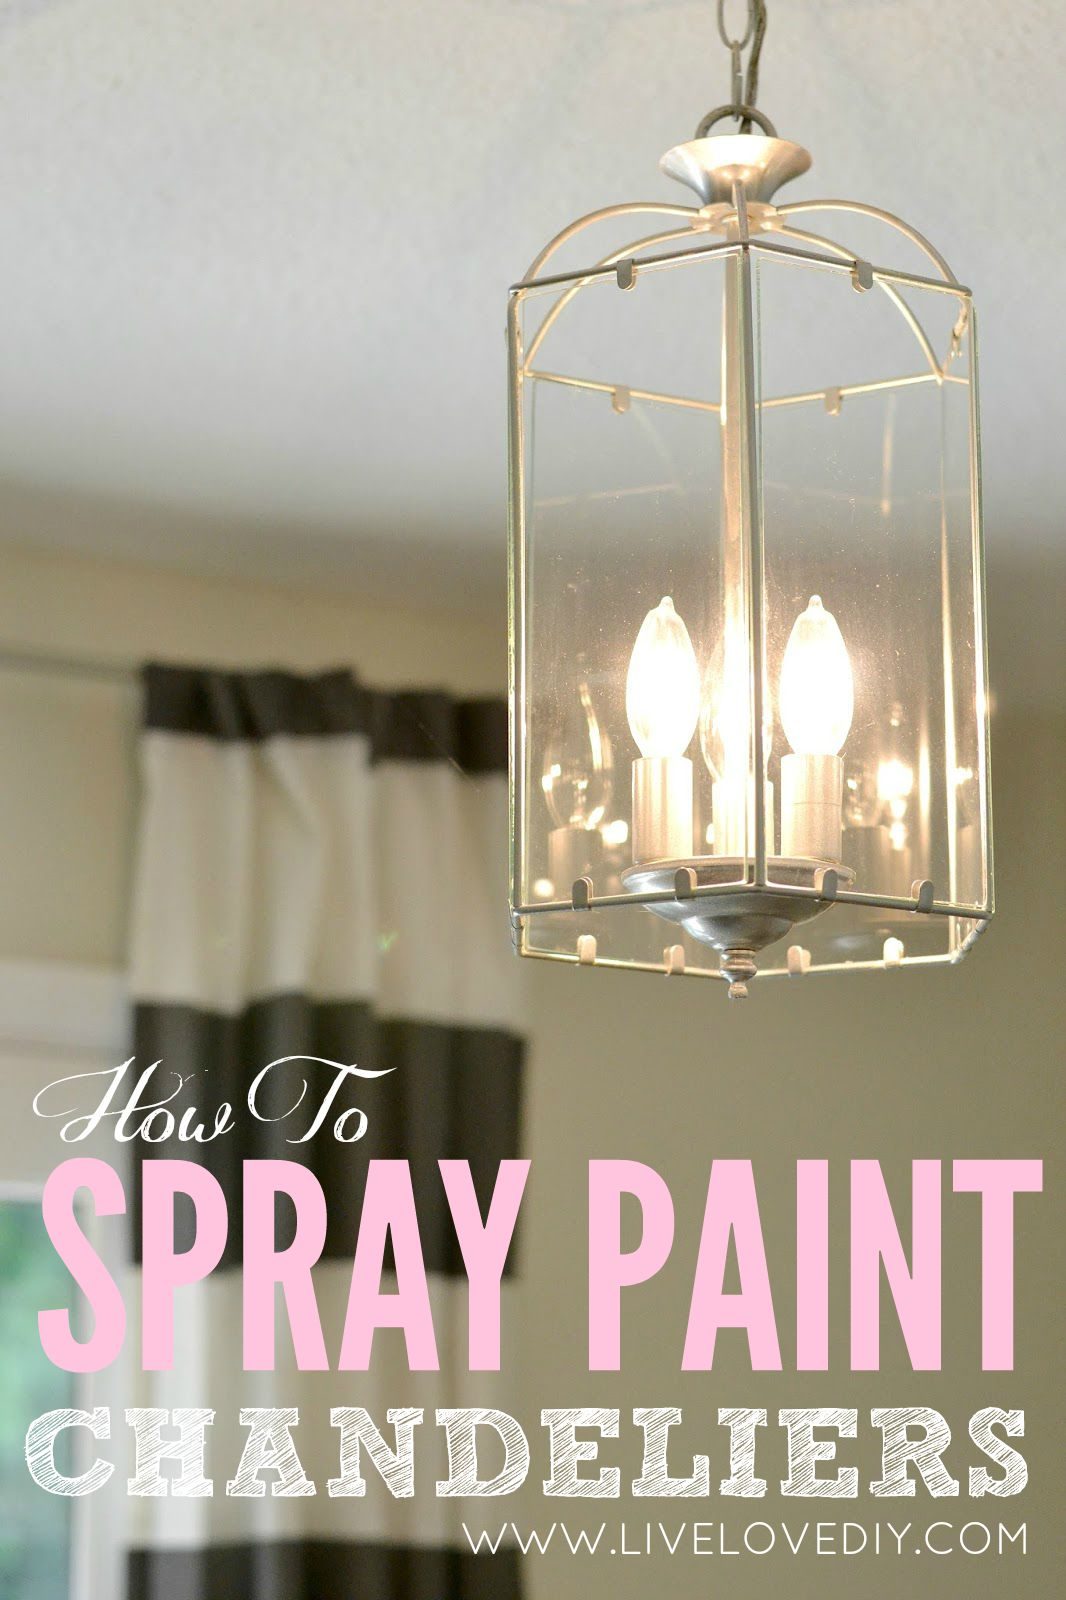 Livelovediy 10 spray paint tips what you never knew about spray paint arubaitofo Choice Image